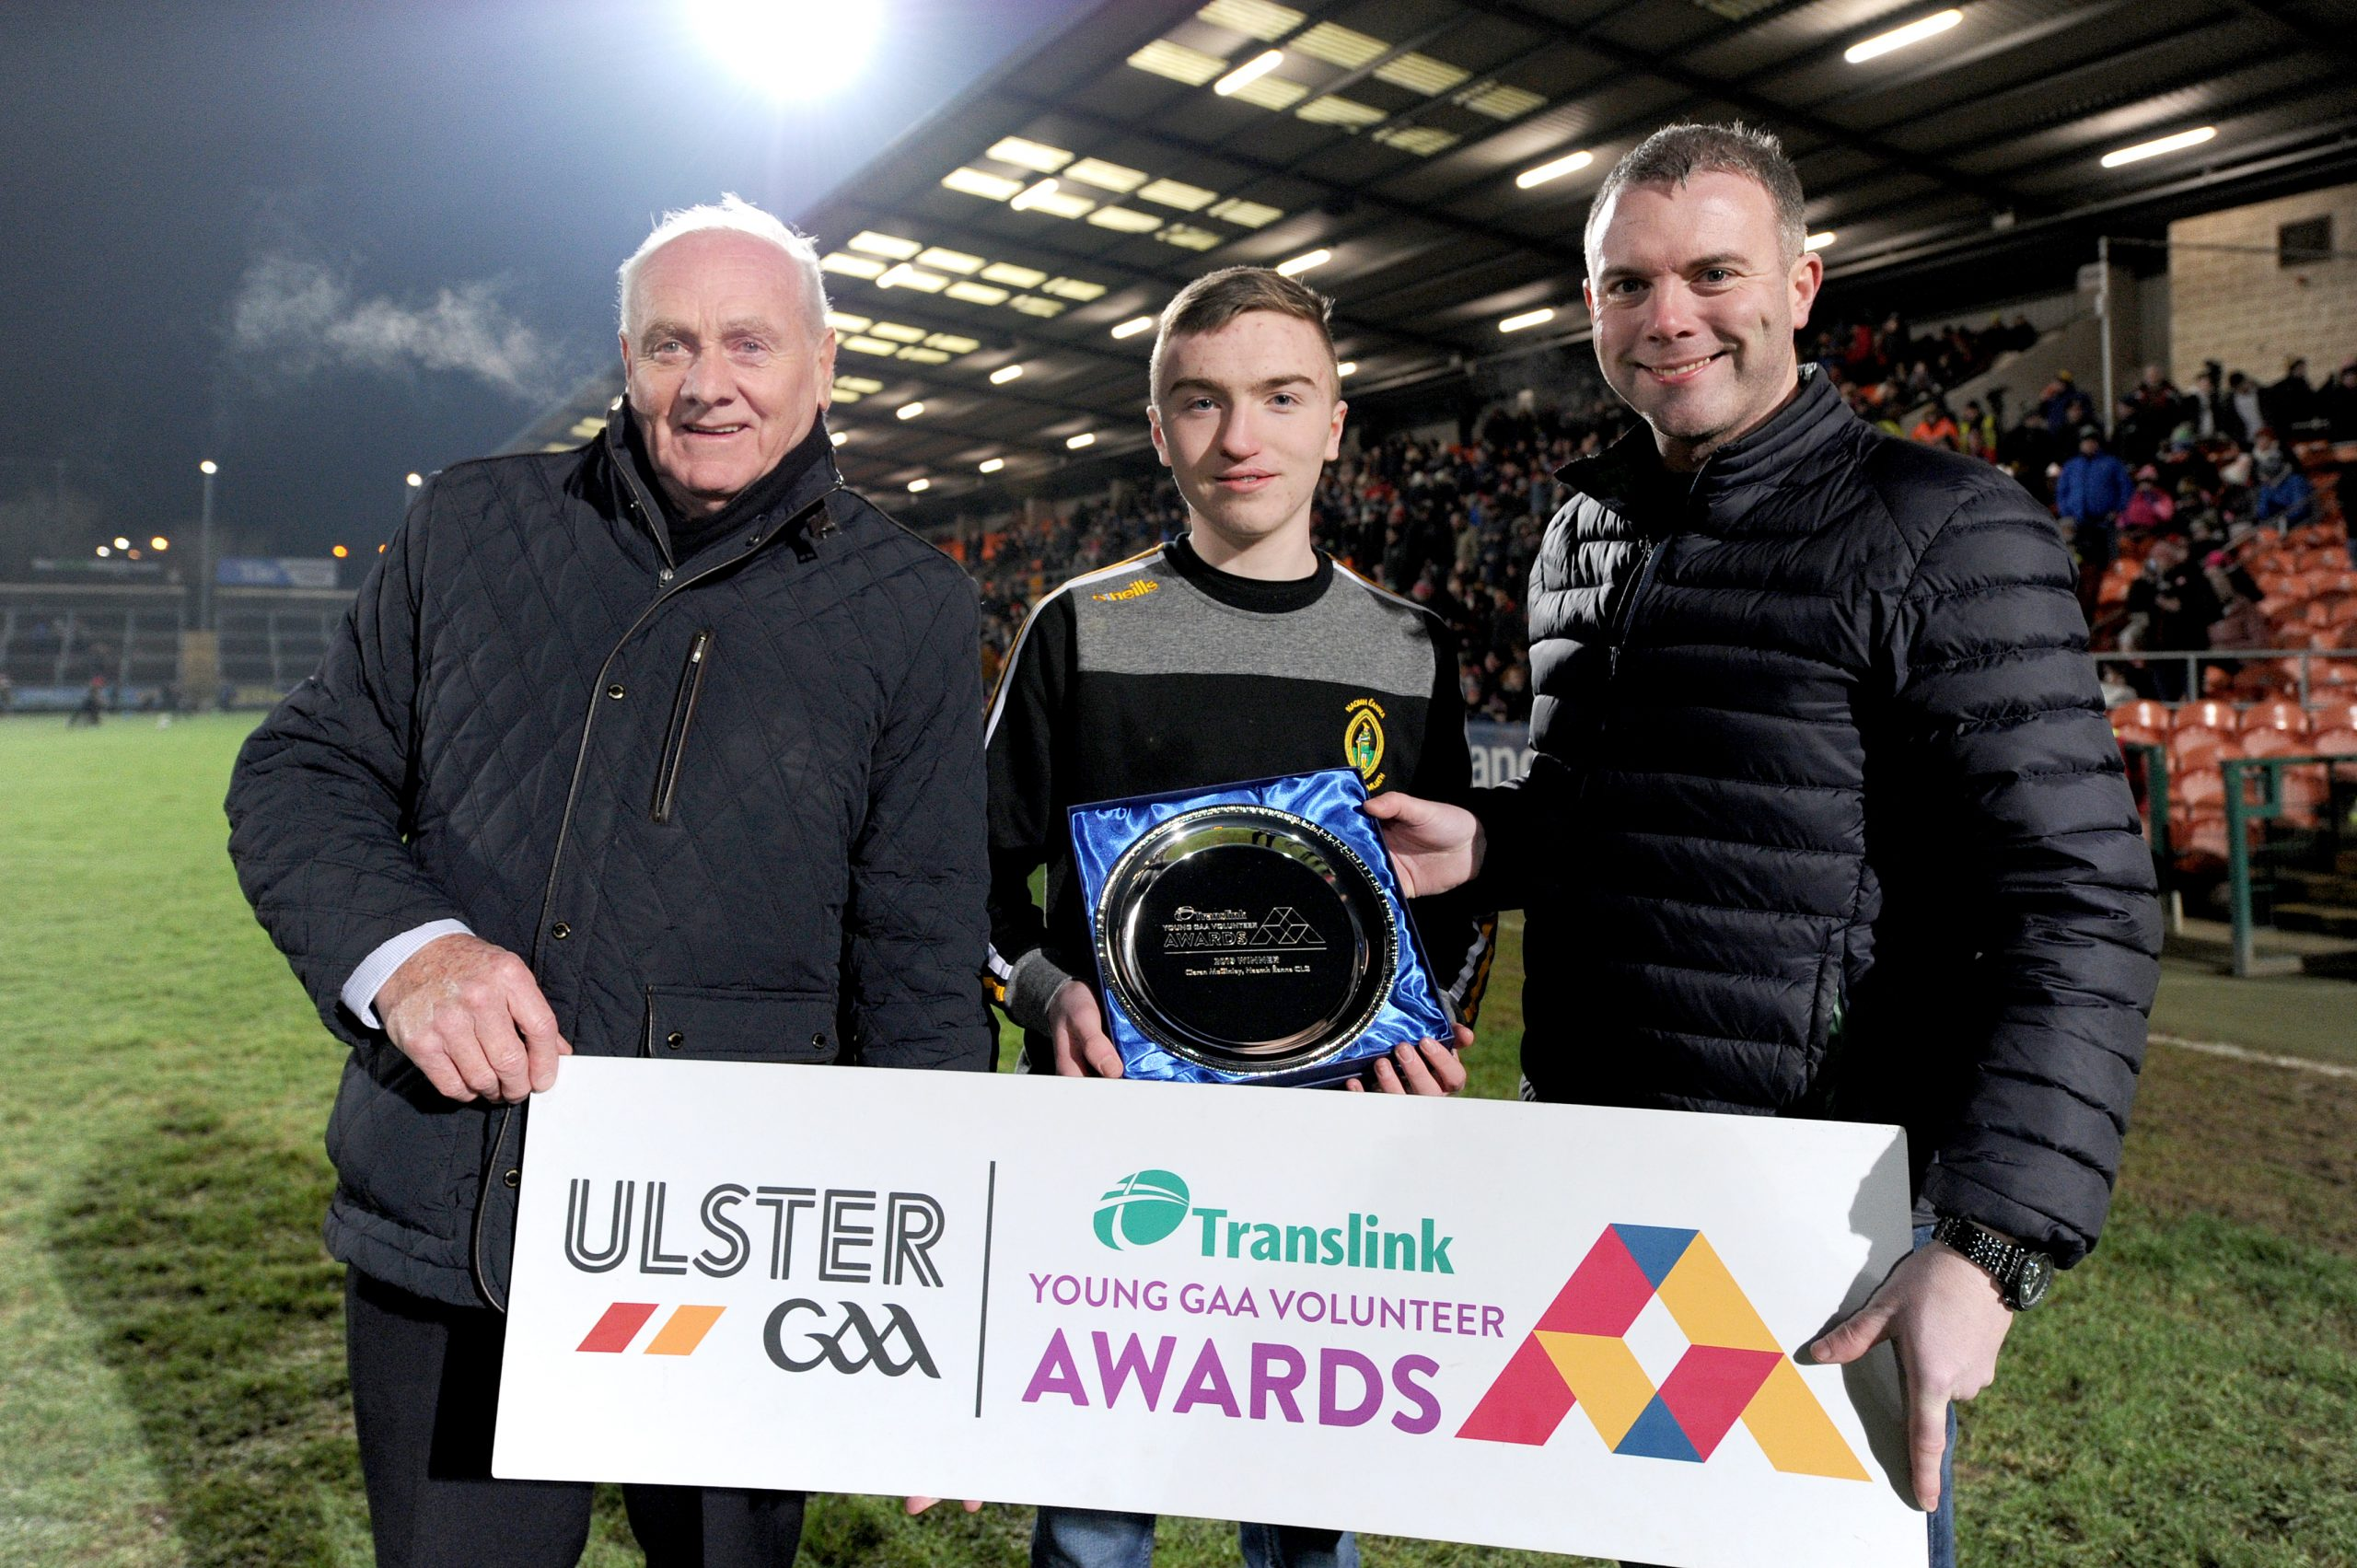 Dedicated Naomh Éanna Player awarded Young GAA Volunteer of Year